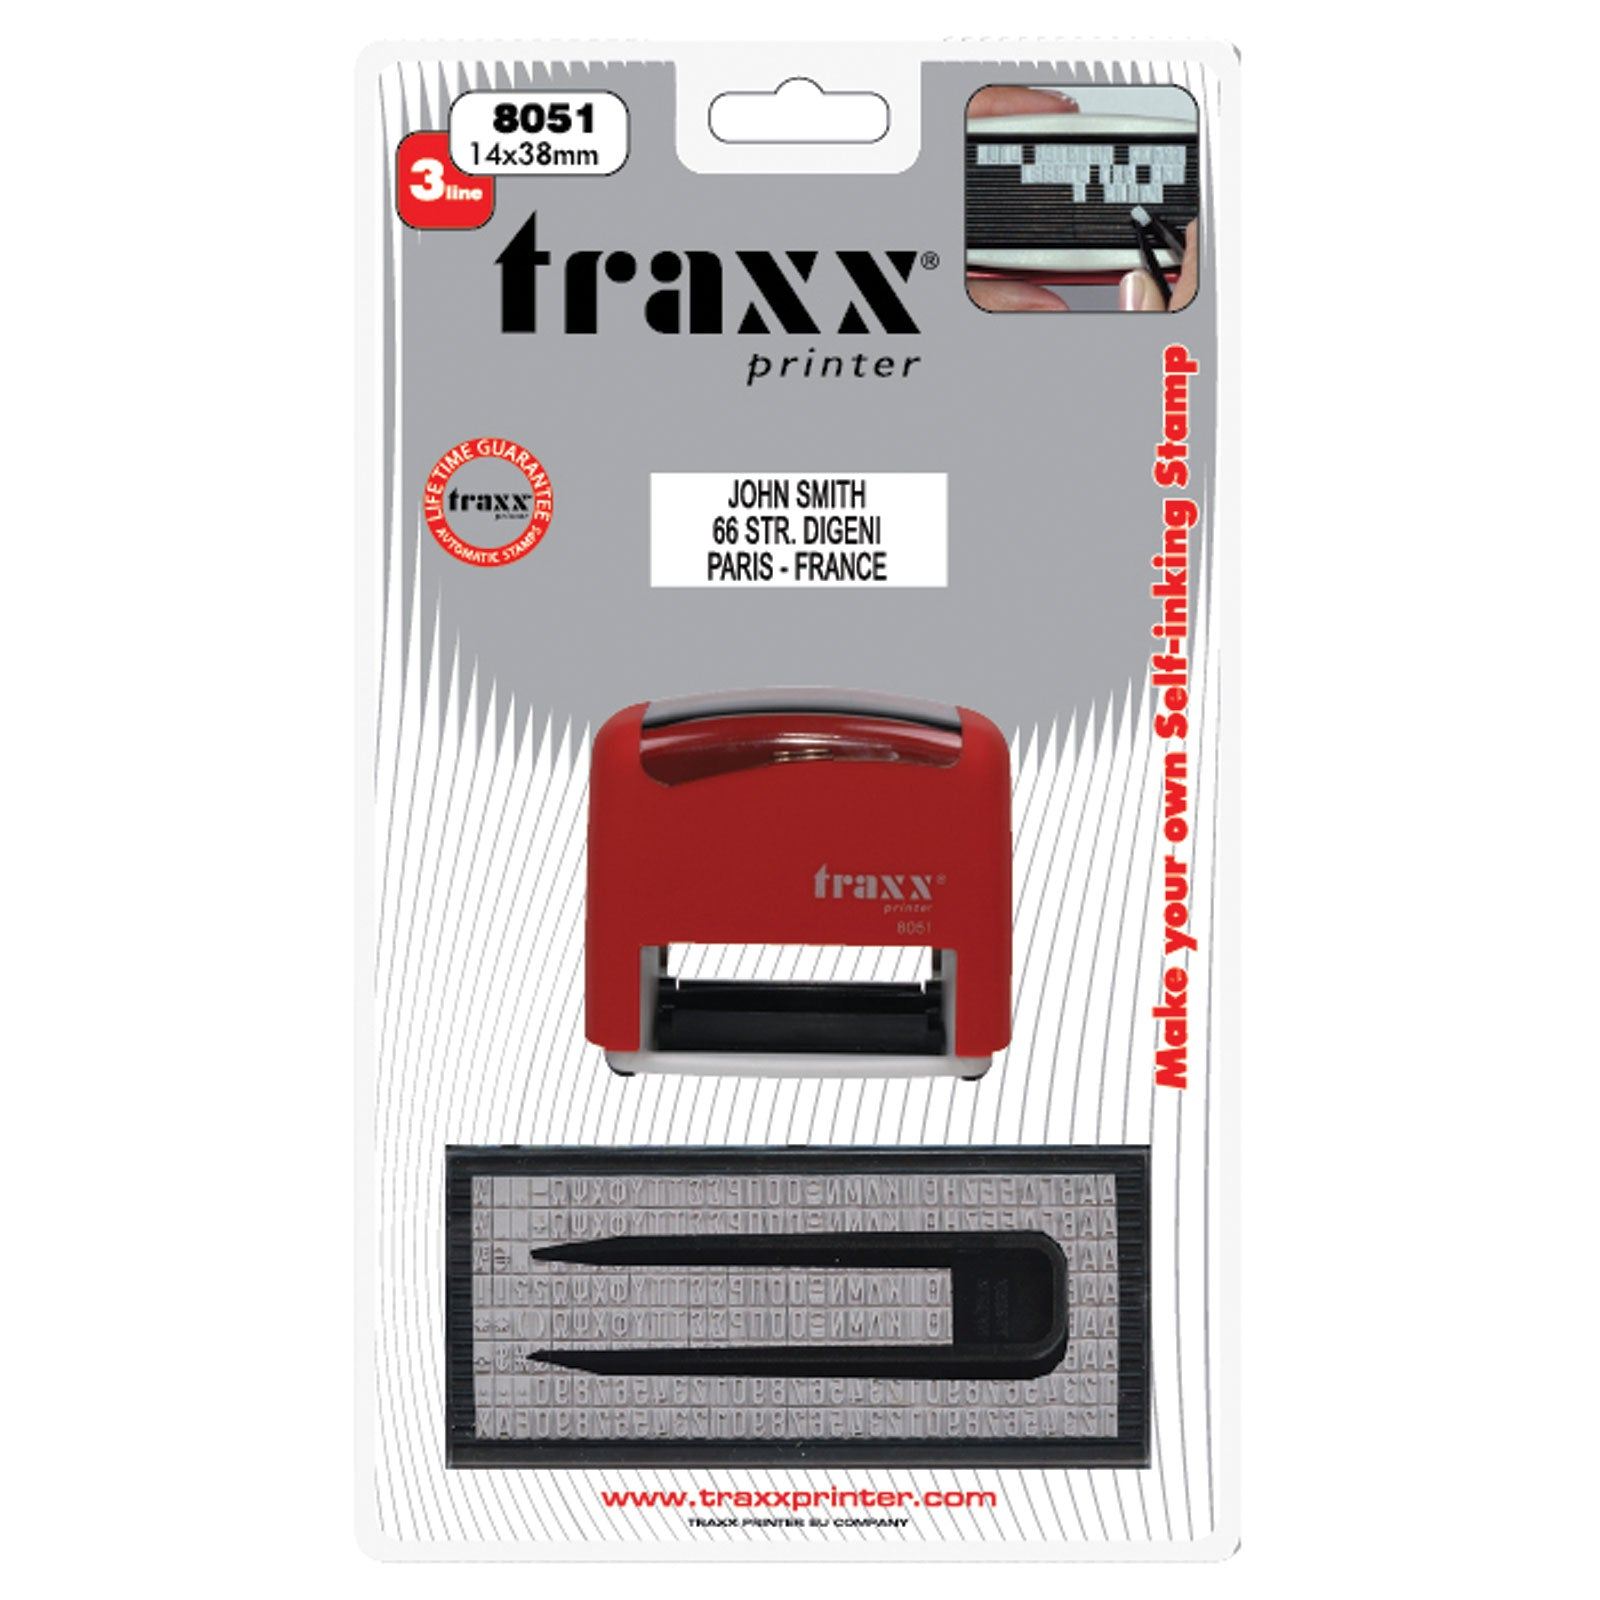 Traxx 8051 DIY Stamp Kit - Up to 3 Lines of Text